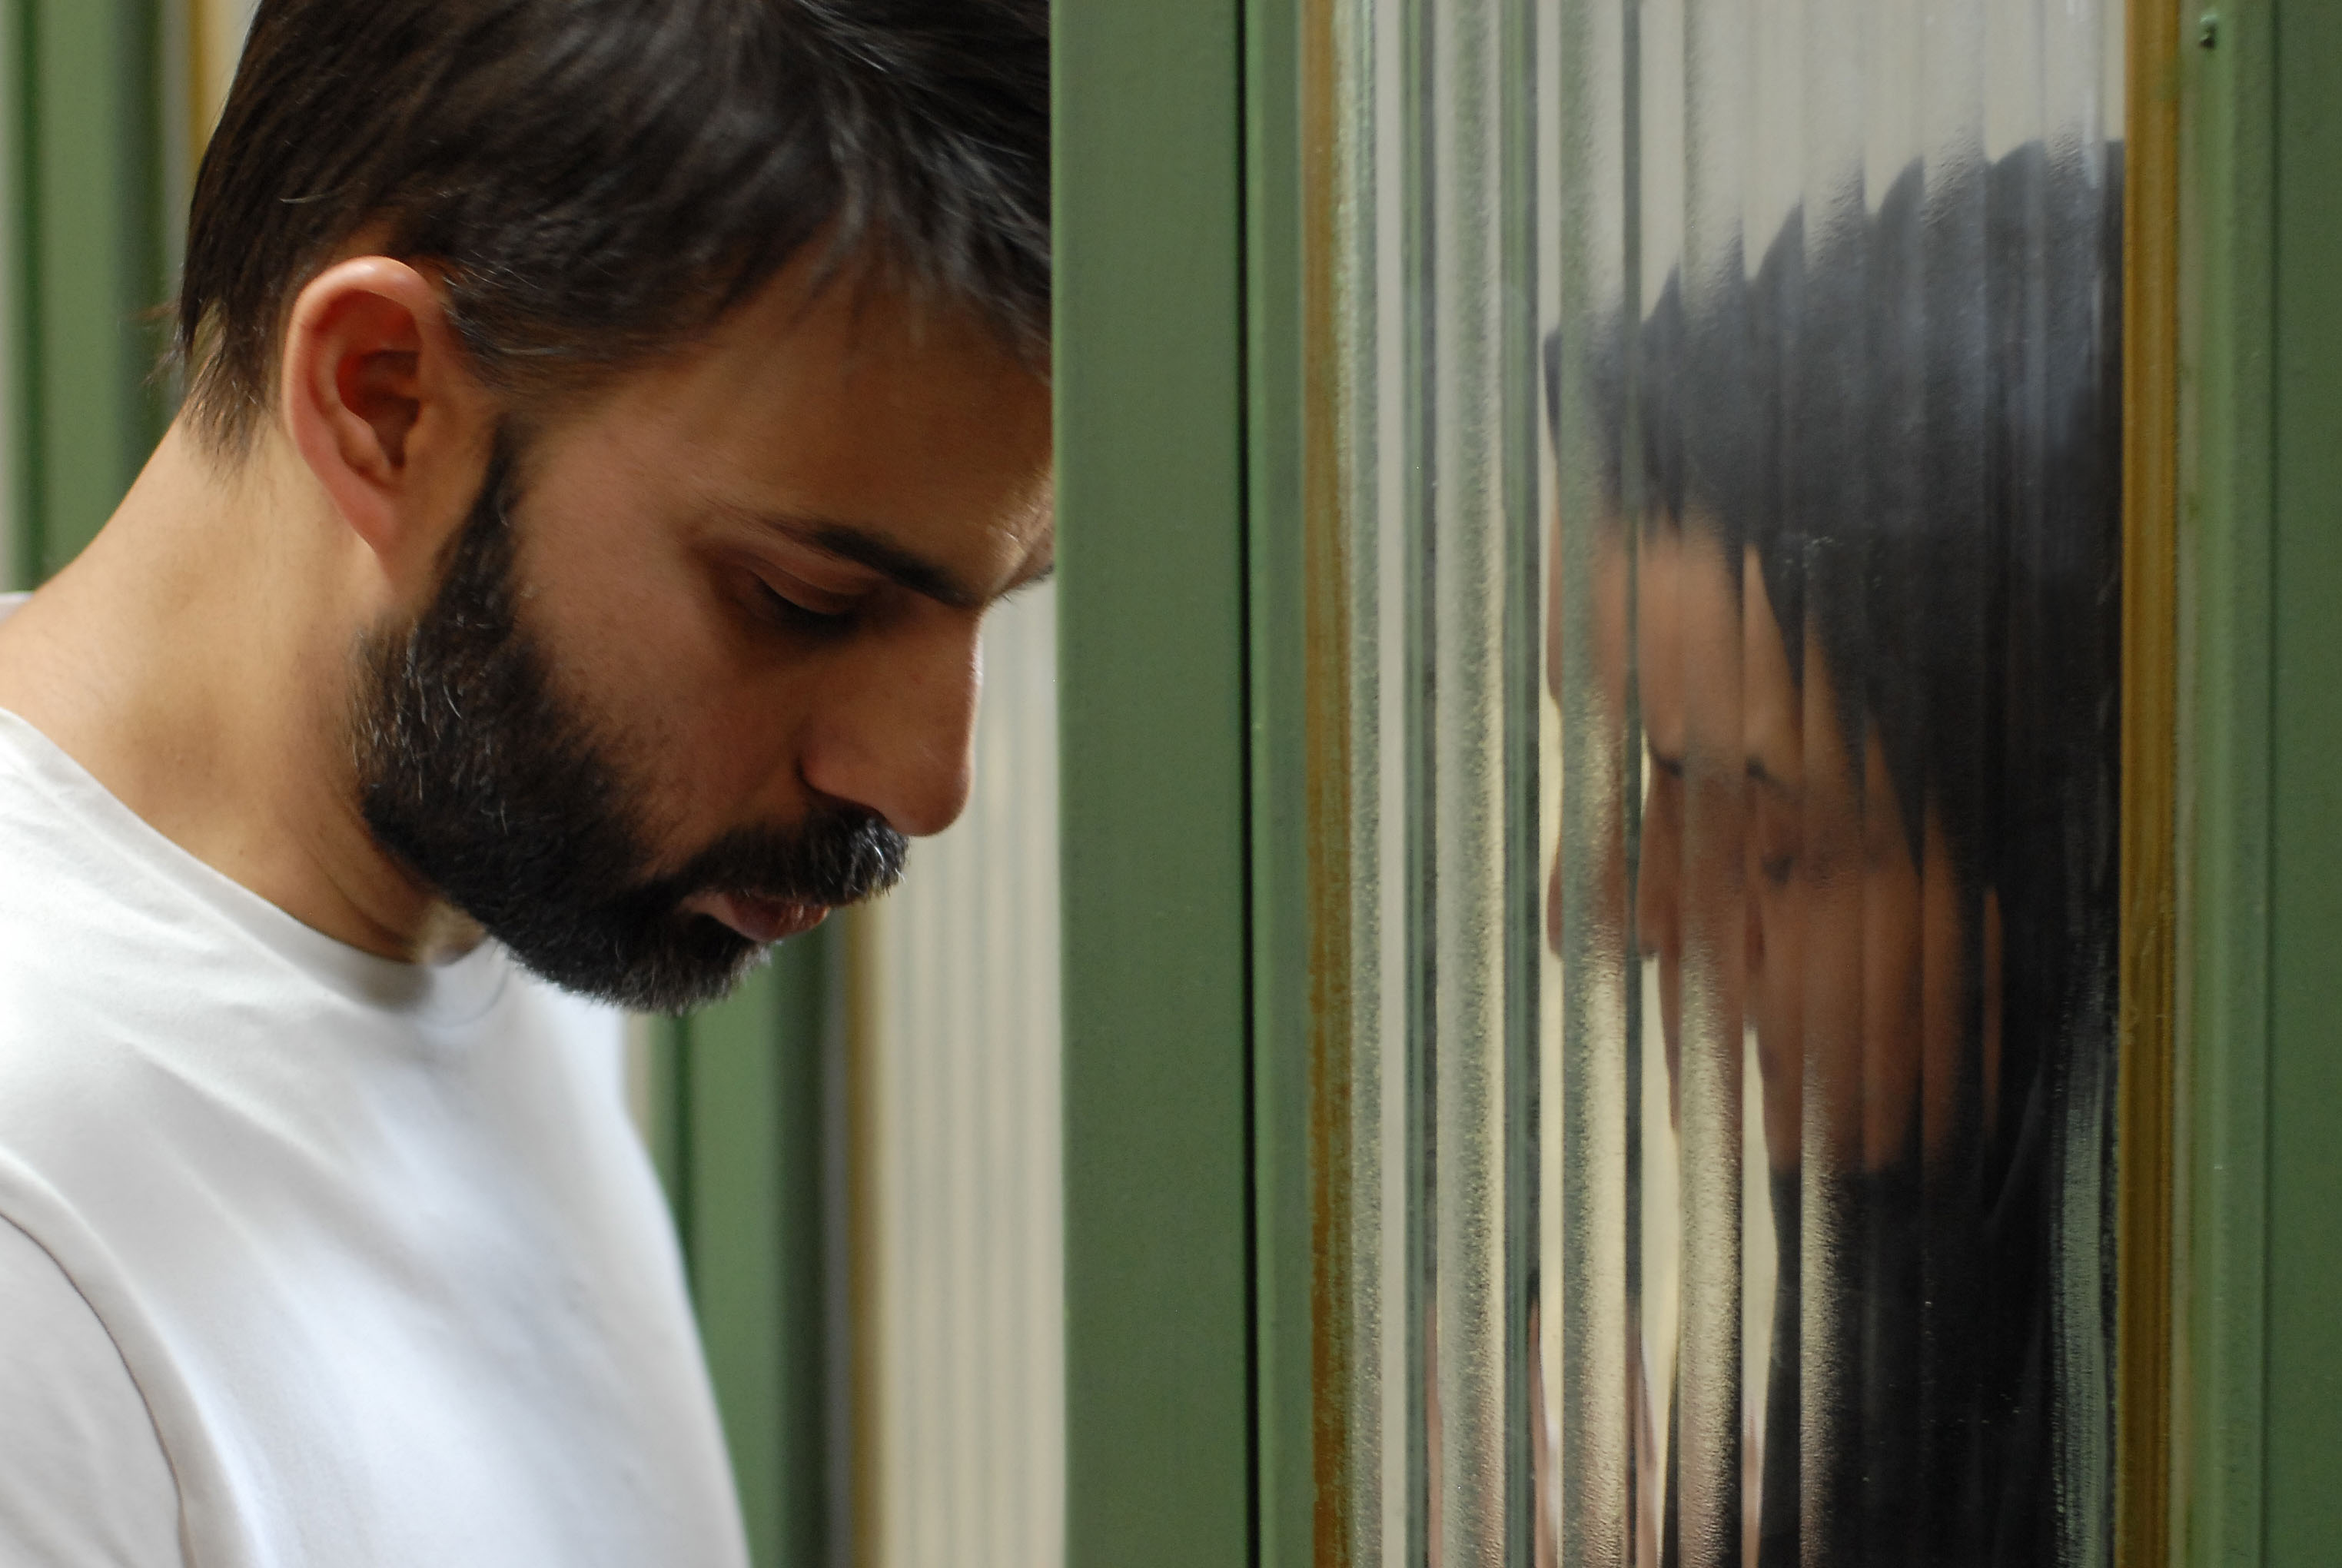 Festival rising: Iranian film 'Nader and Simin, A Separation' is set to open the Focus on Asia Fukuoka International Film Festival.